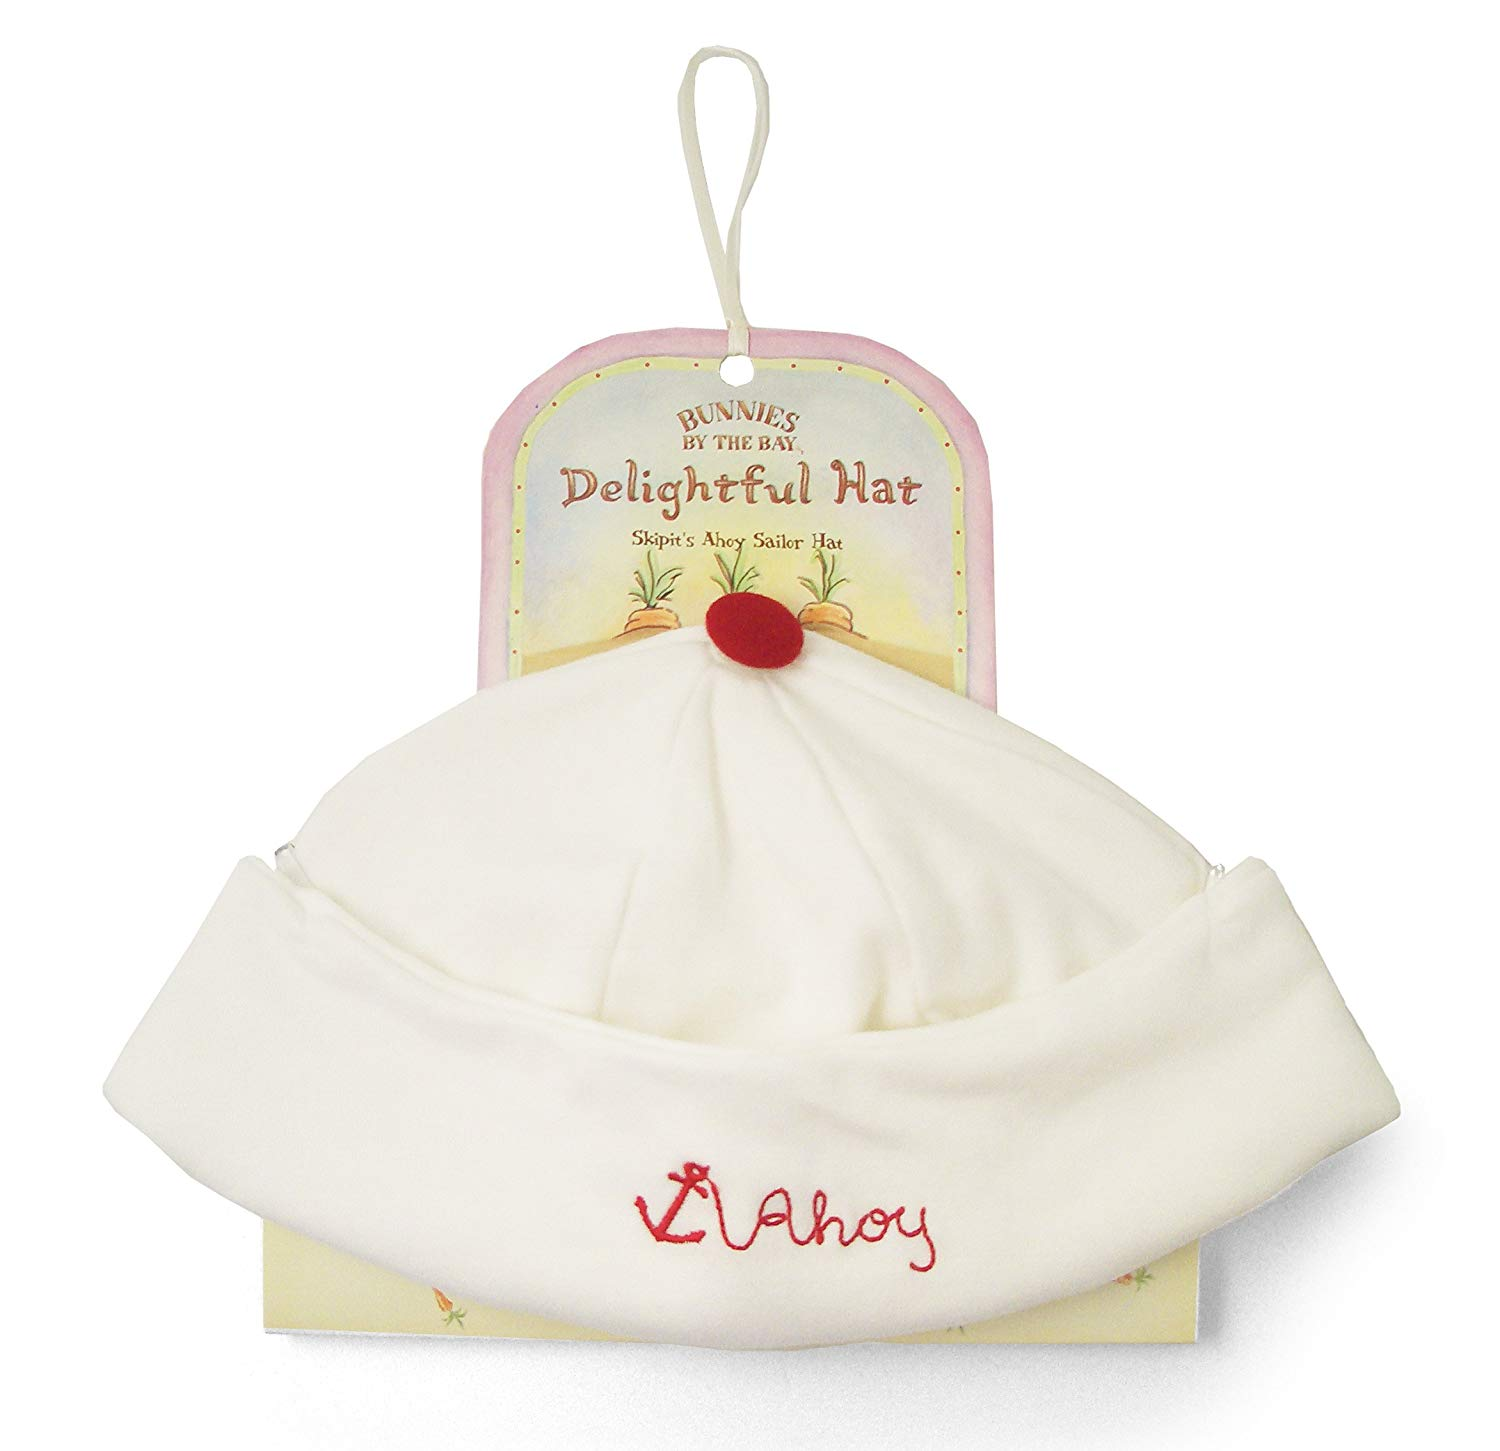 Bunnies by the Bay Unisex-Baby Ahoy Sailor Hat, White, 6-12 Months